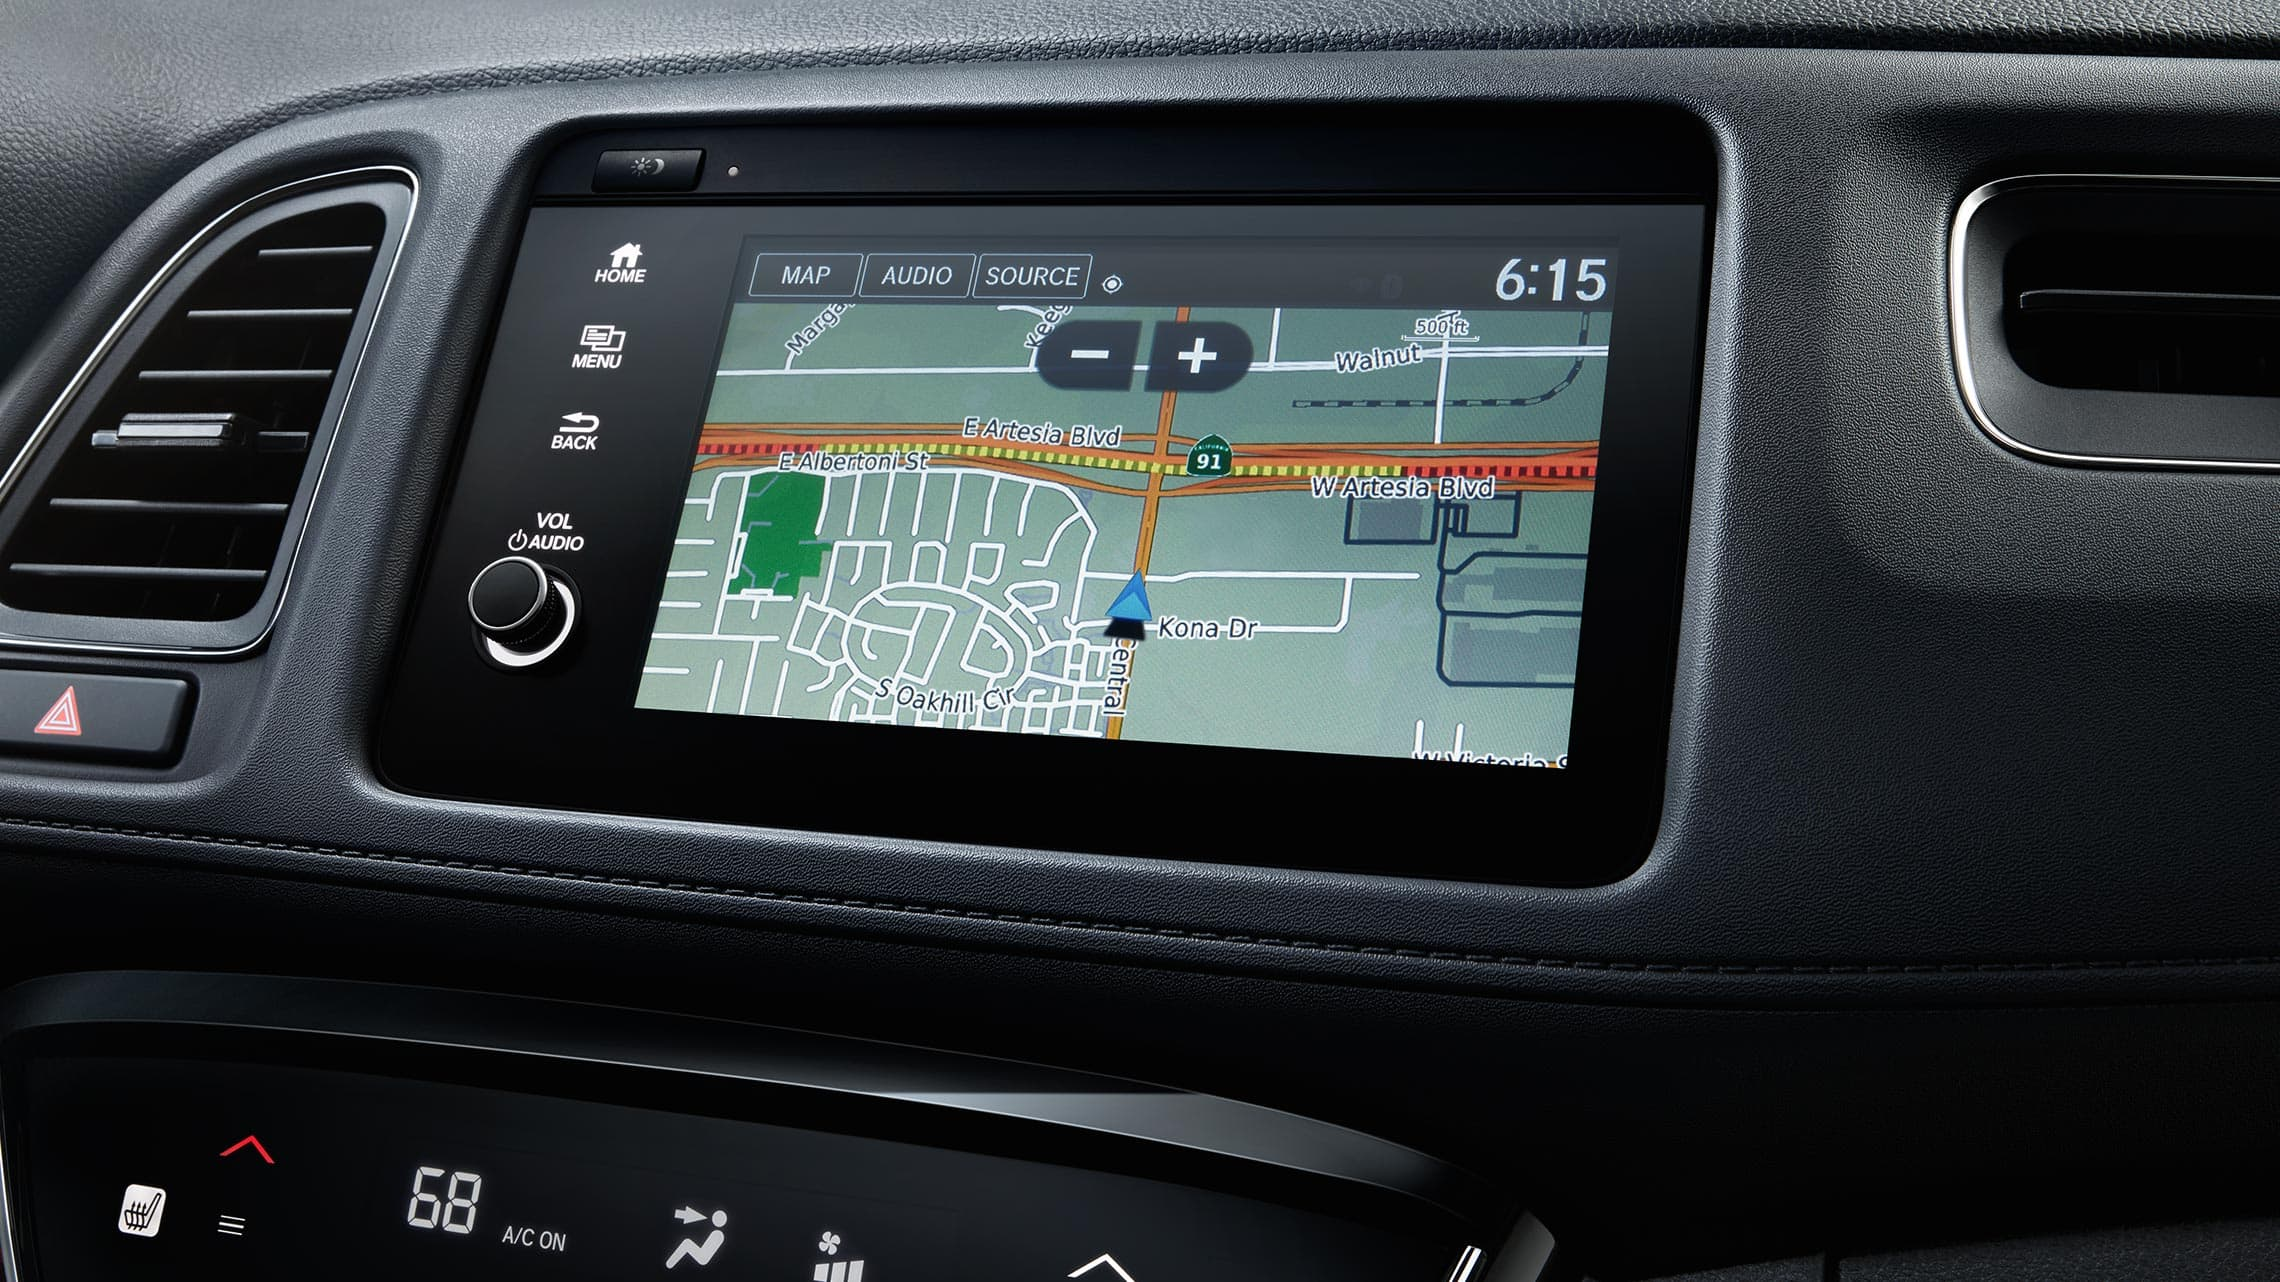 Honda Satellite-Linked Navigation System™ detail on Display Audio touch-screen in the 2020 Honda HR-V Touring.